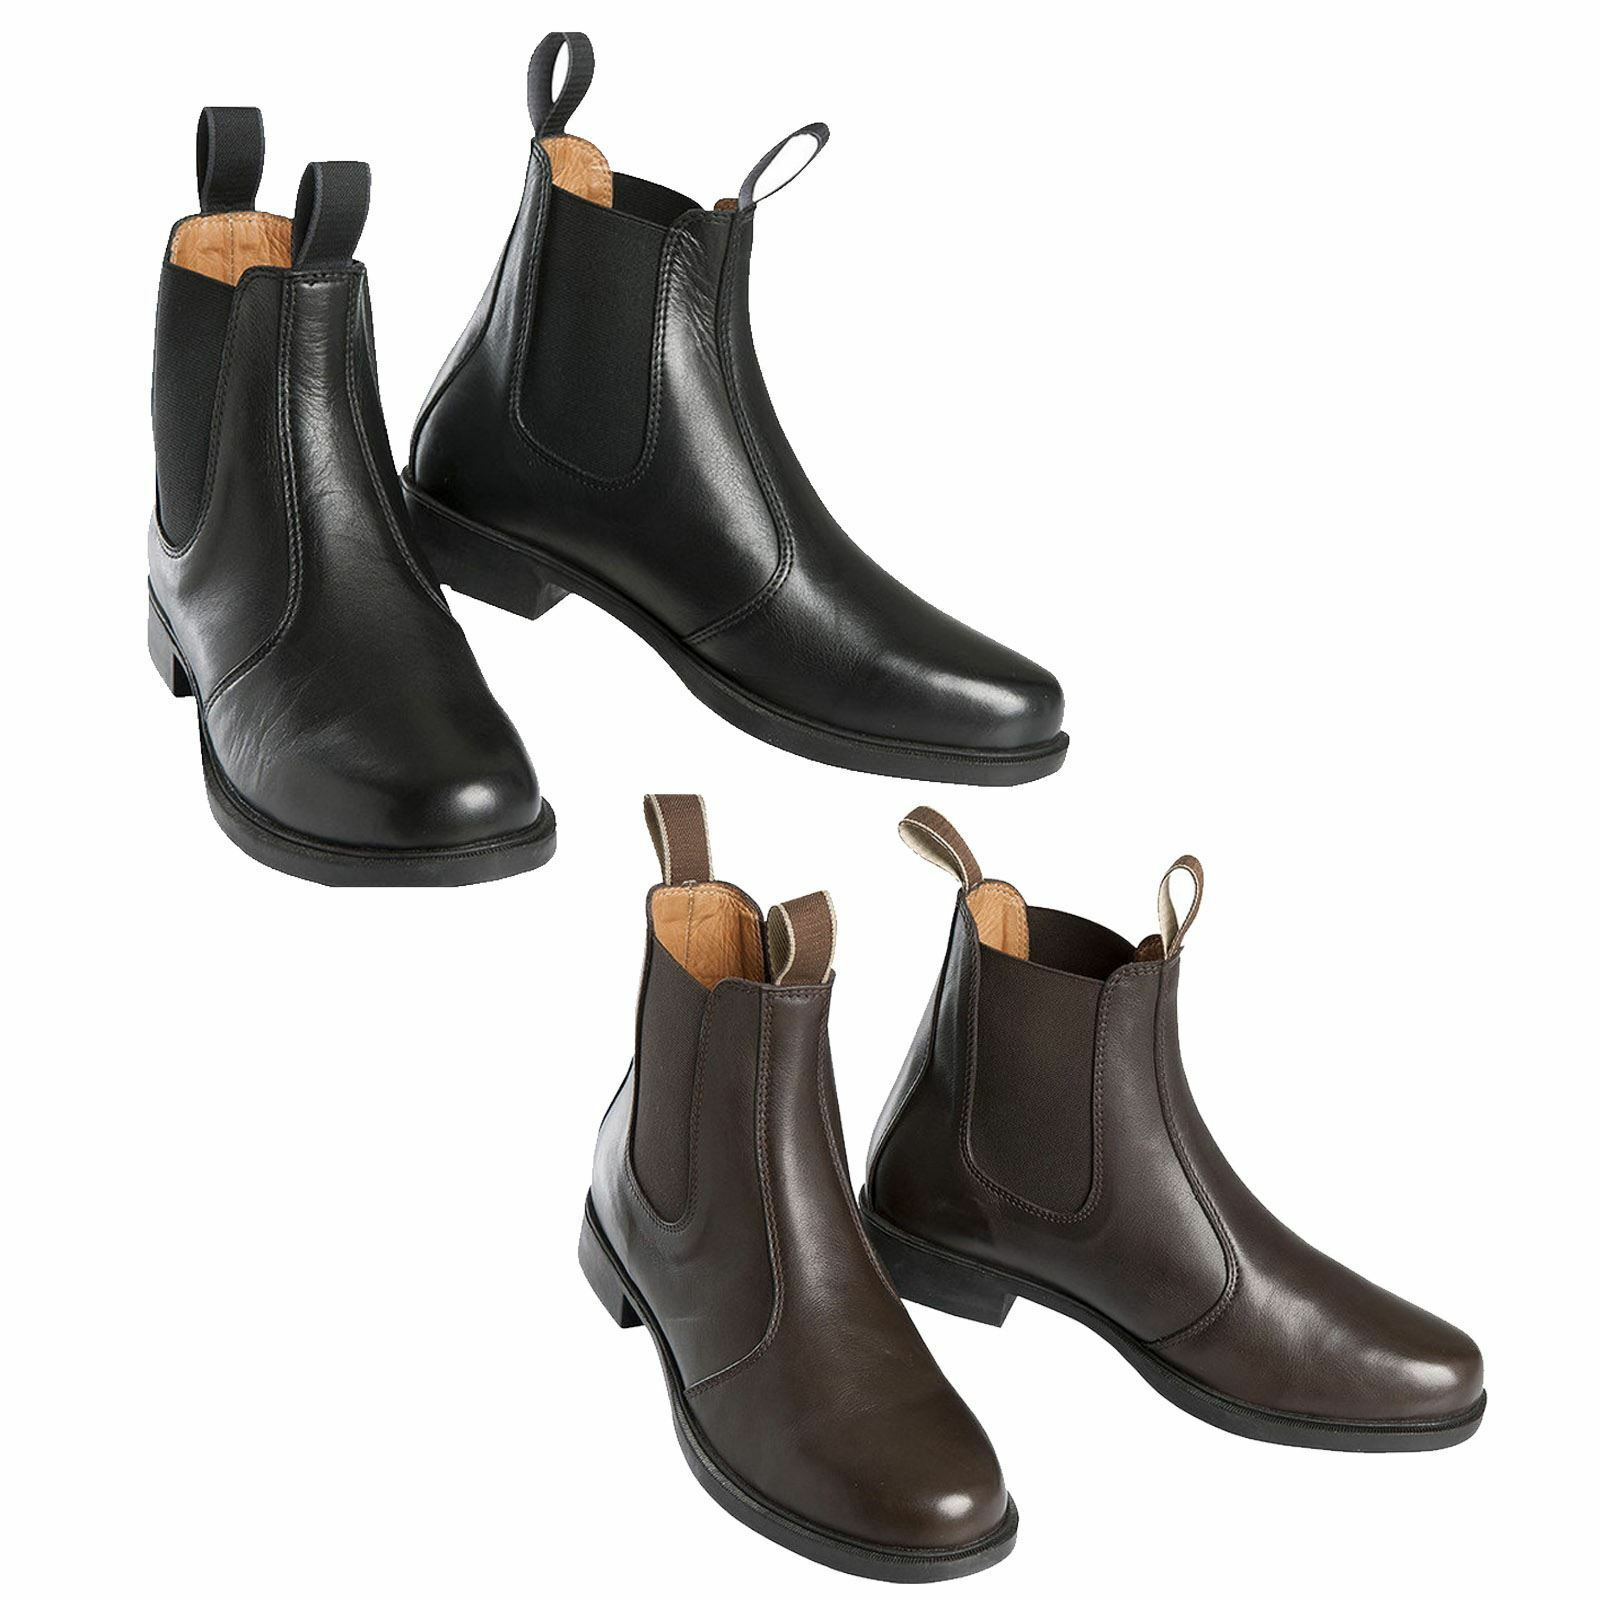 Equi-Theme Buenos Aires Mens Womens Leather Eventing Horse Riding Jodhpur Boots